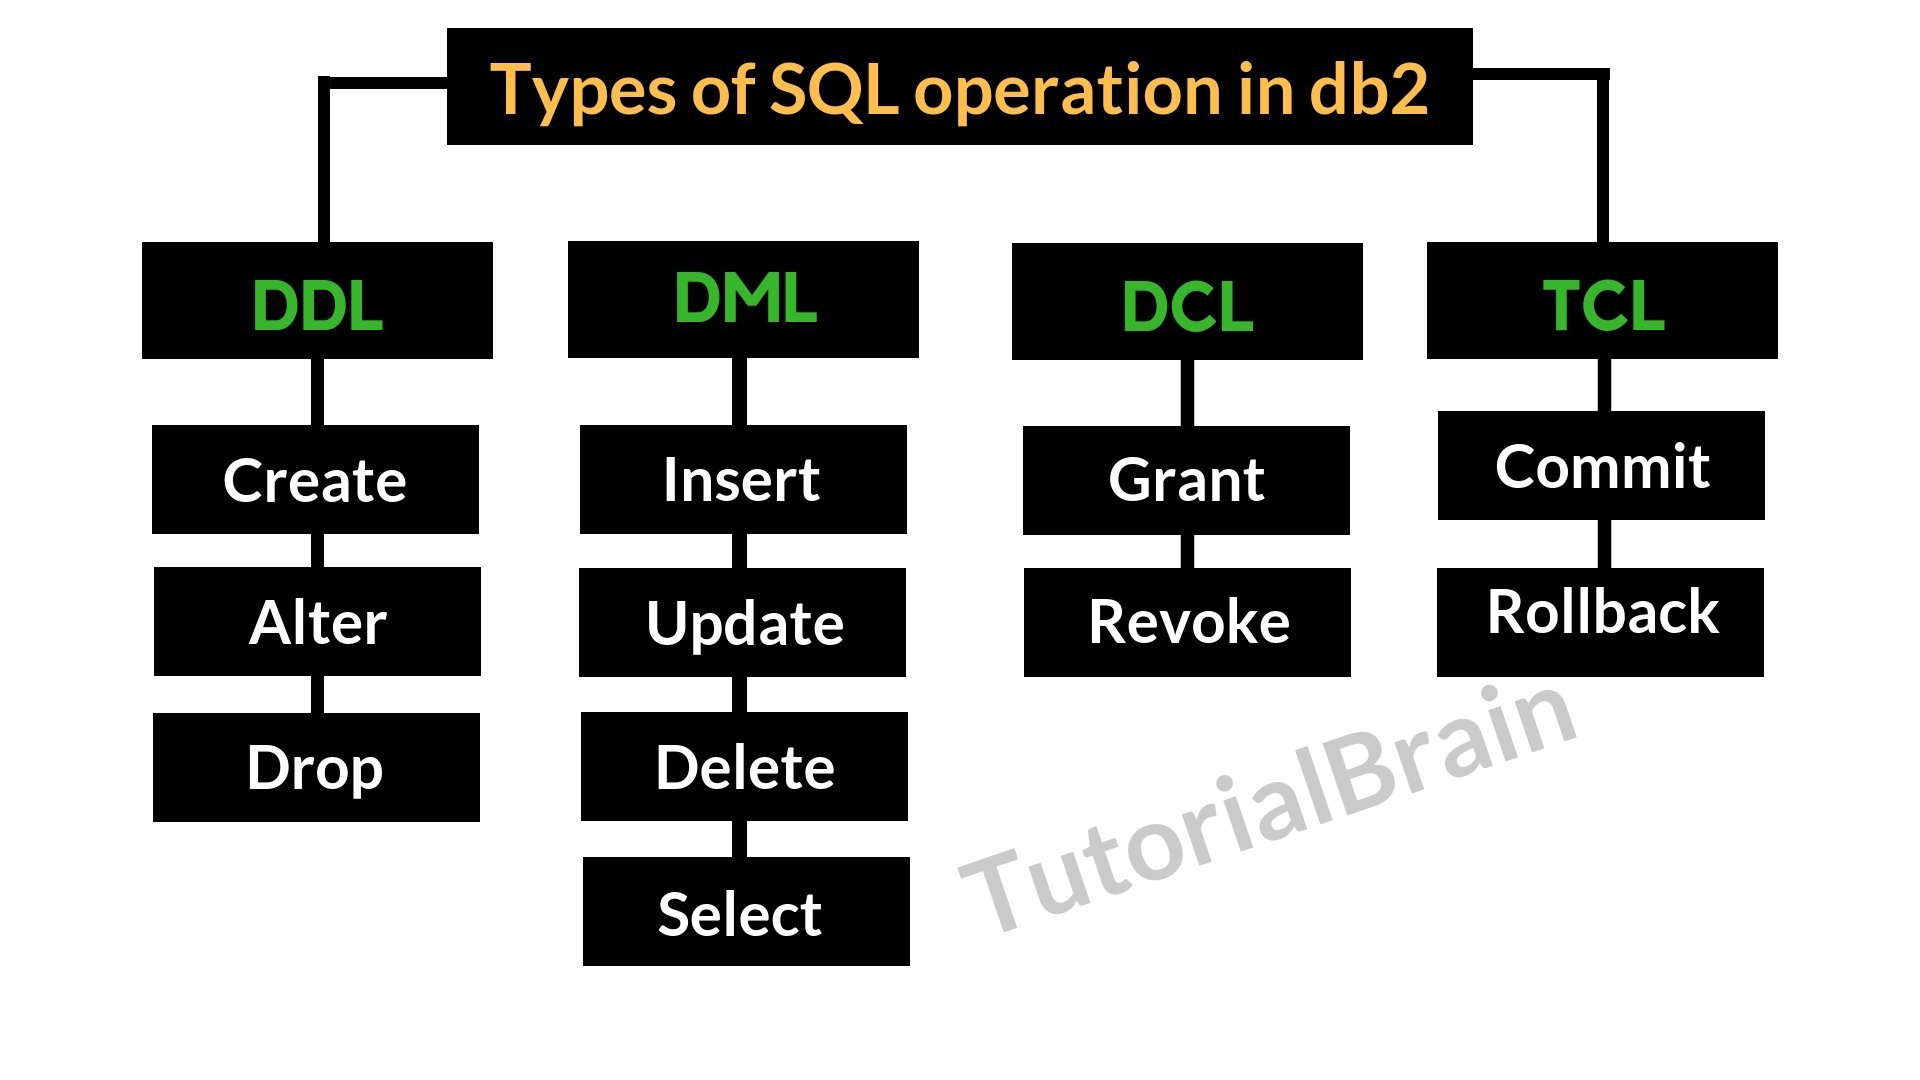 Types of SQL operation in db2 — TutorialBrain